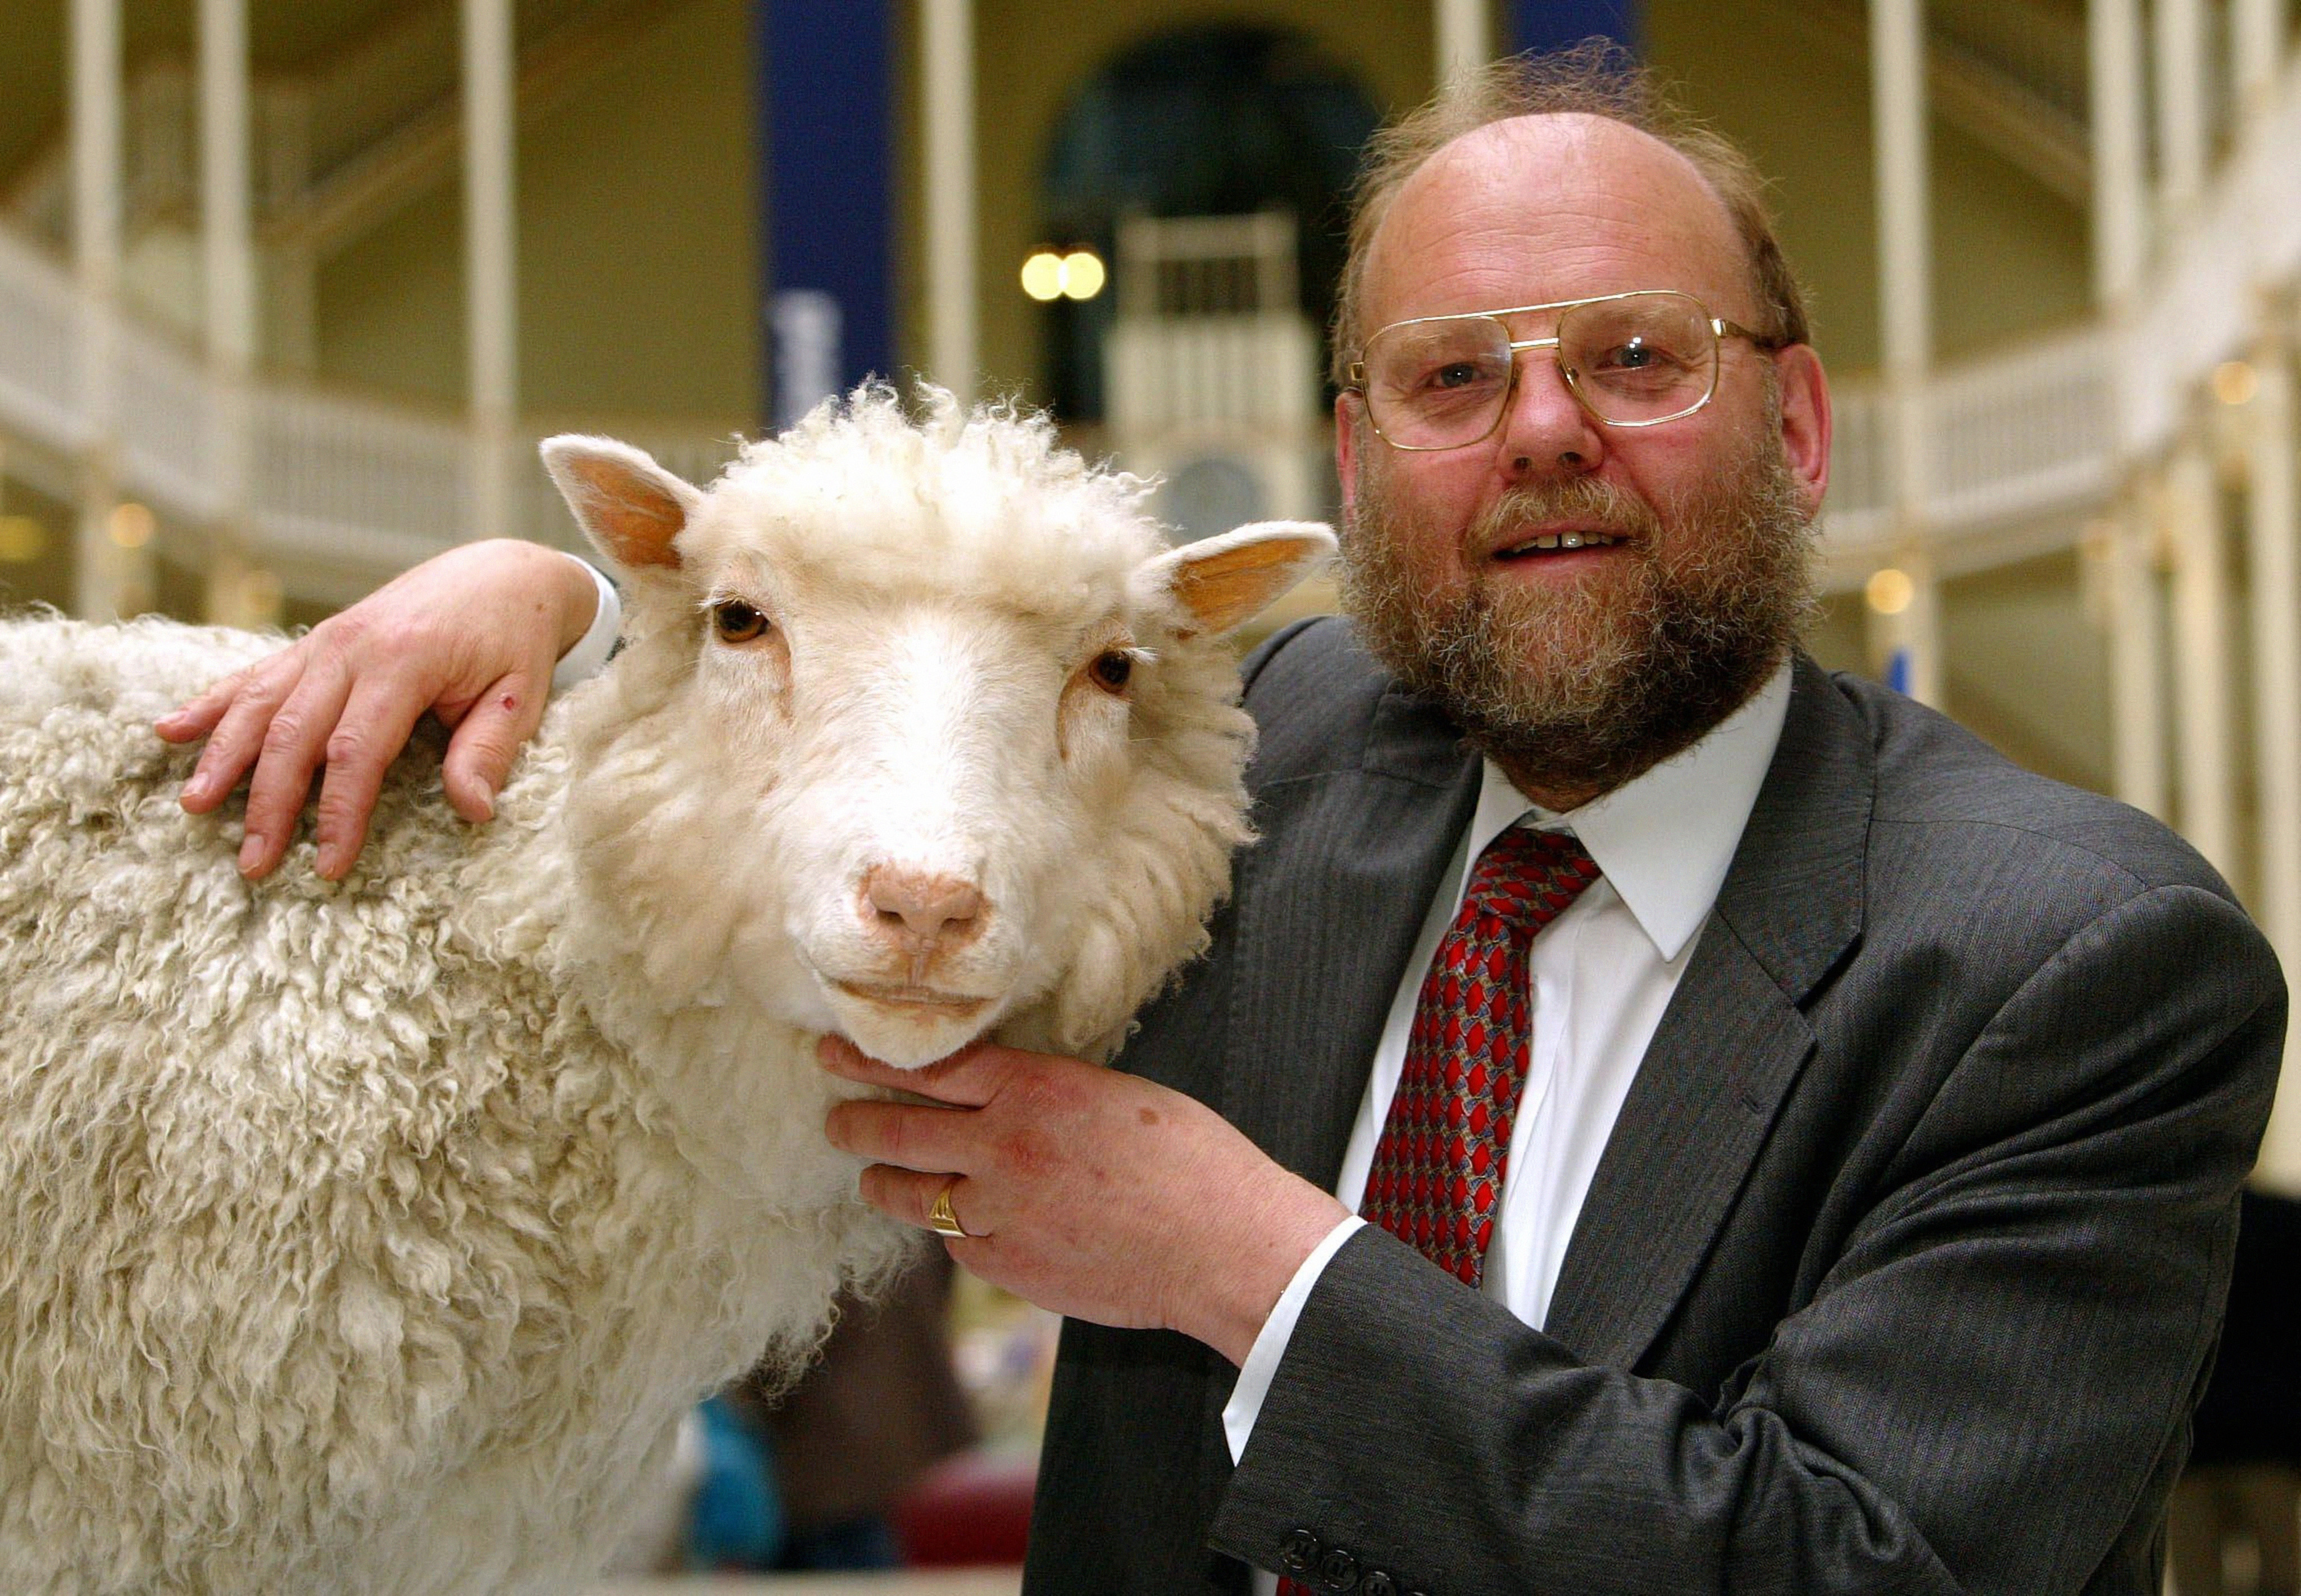 Dolly the Sheep - Preserved.